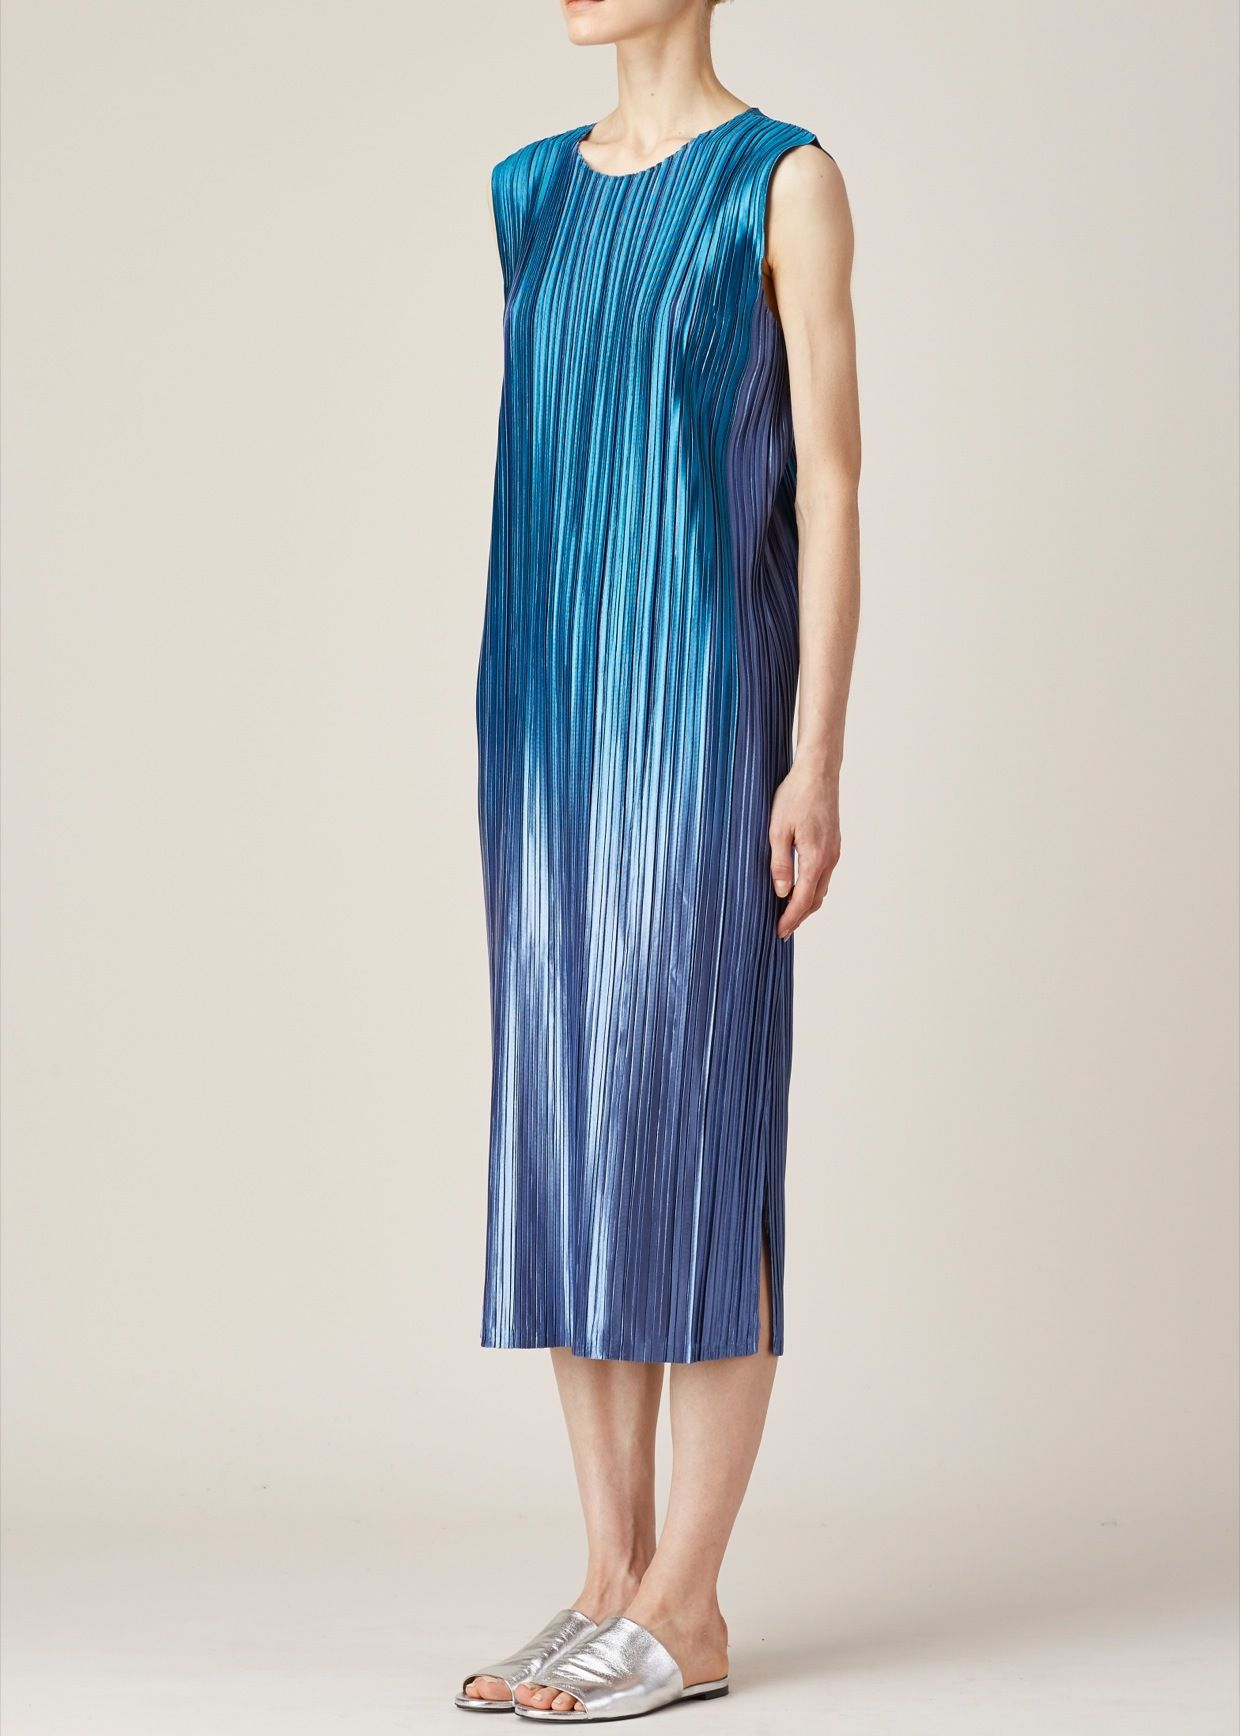 8c448f86b4a51 Totokaelo - Issey Miyake PLEATS PLEASE Blue Ombre Tank Dress ...